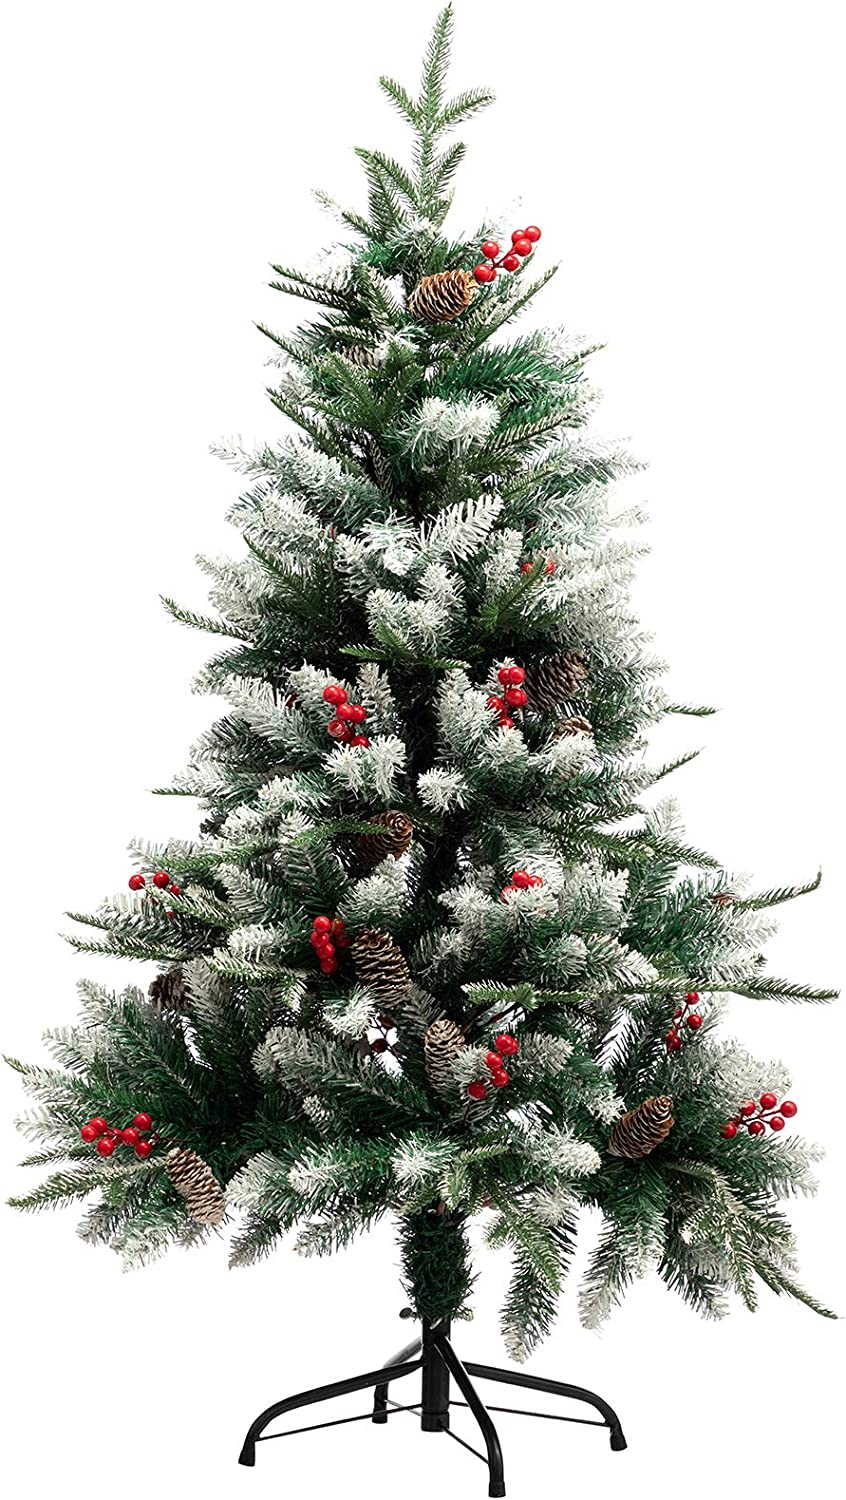 PARANTA 4FT Christmas Tree with Pine Cone and Red Berries Decoration Unlit, 346 Branch Tips, Artificial Christmas Tree with White Snow Tips